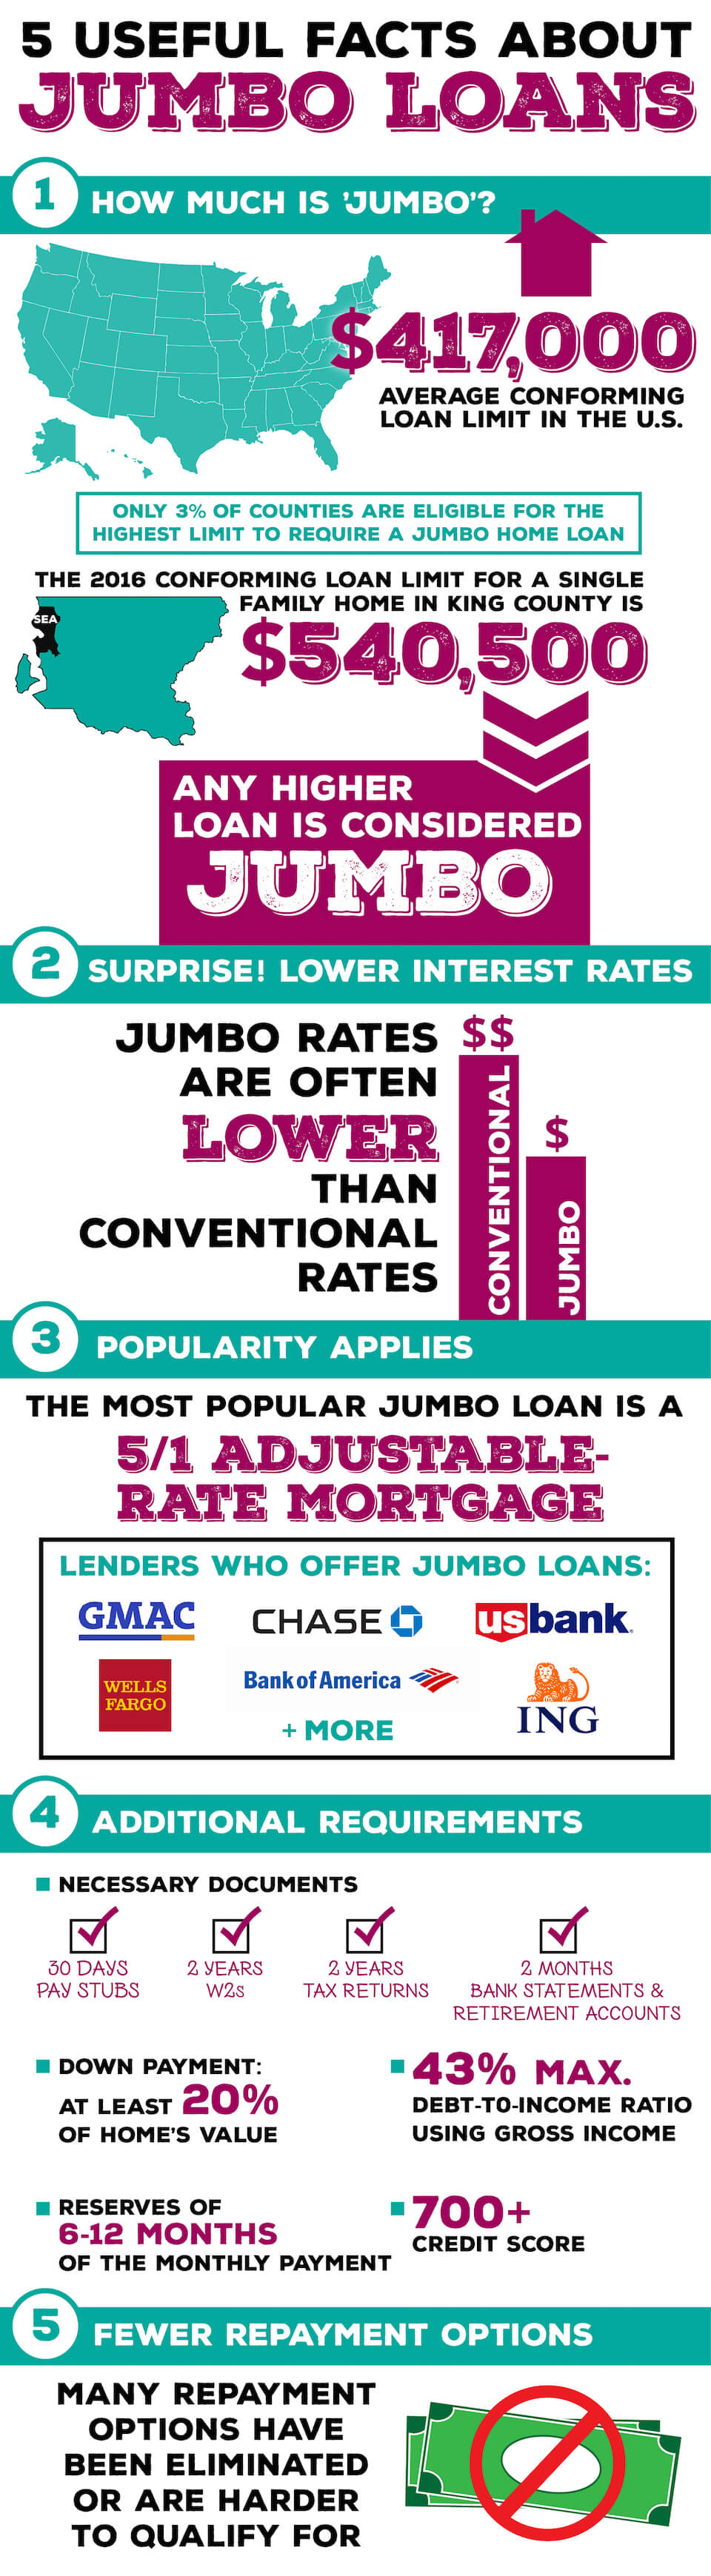 Useful Facts About Jumbo Loans